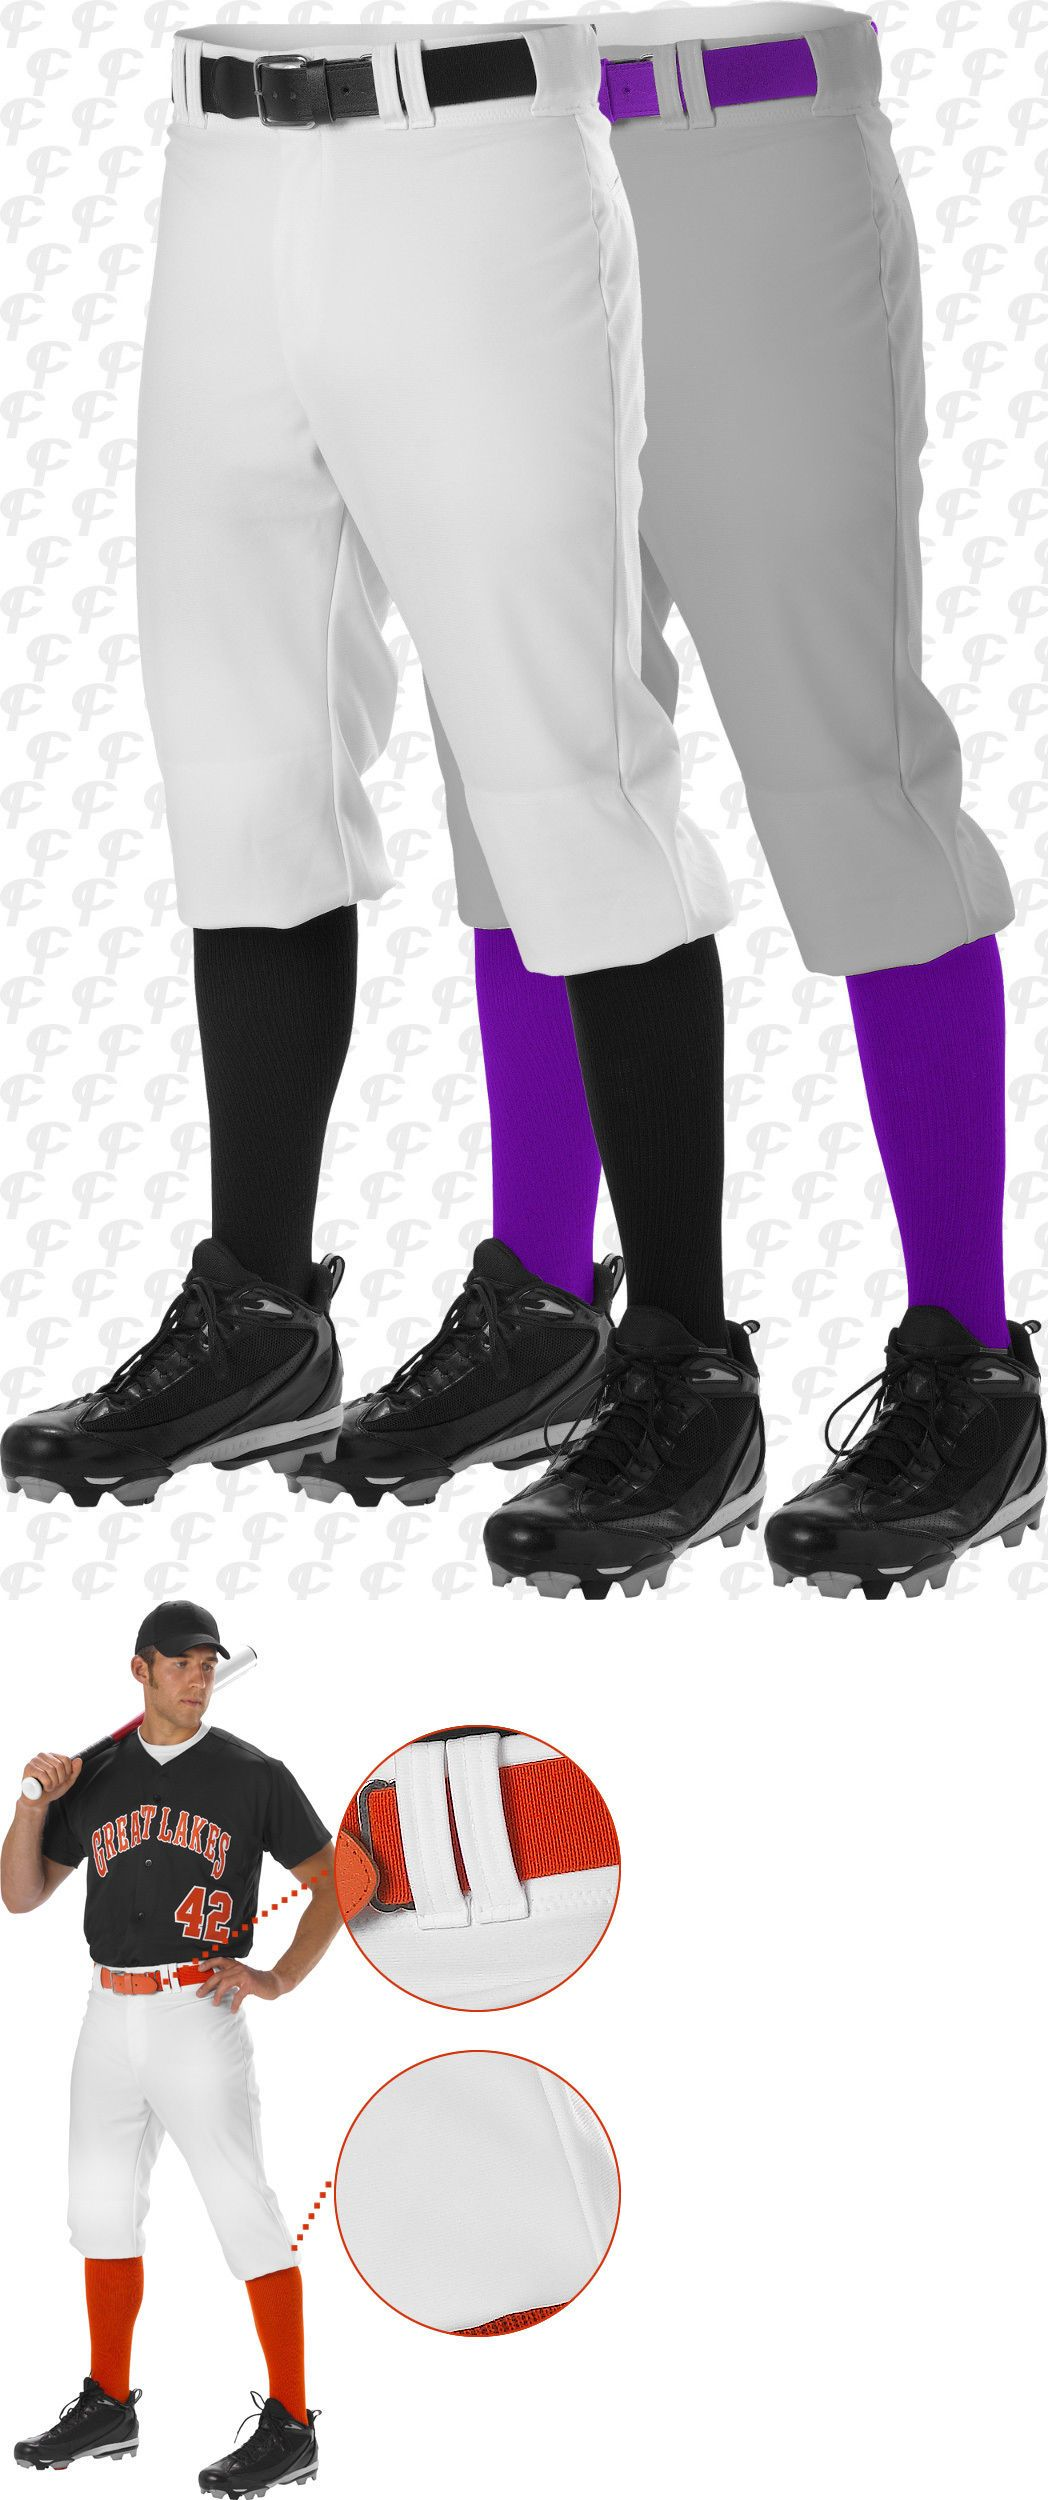 8d21b7160ac Baseball Pants 181337  Alleson Athletic Youth Boys Knicker Length Baseball  Pants Softball Pants 605Pkny -